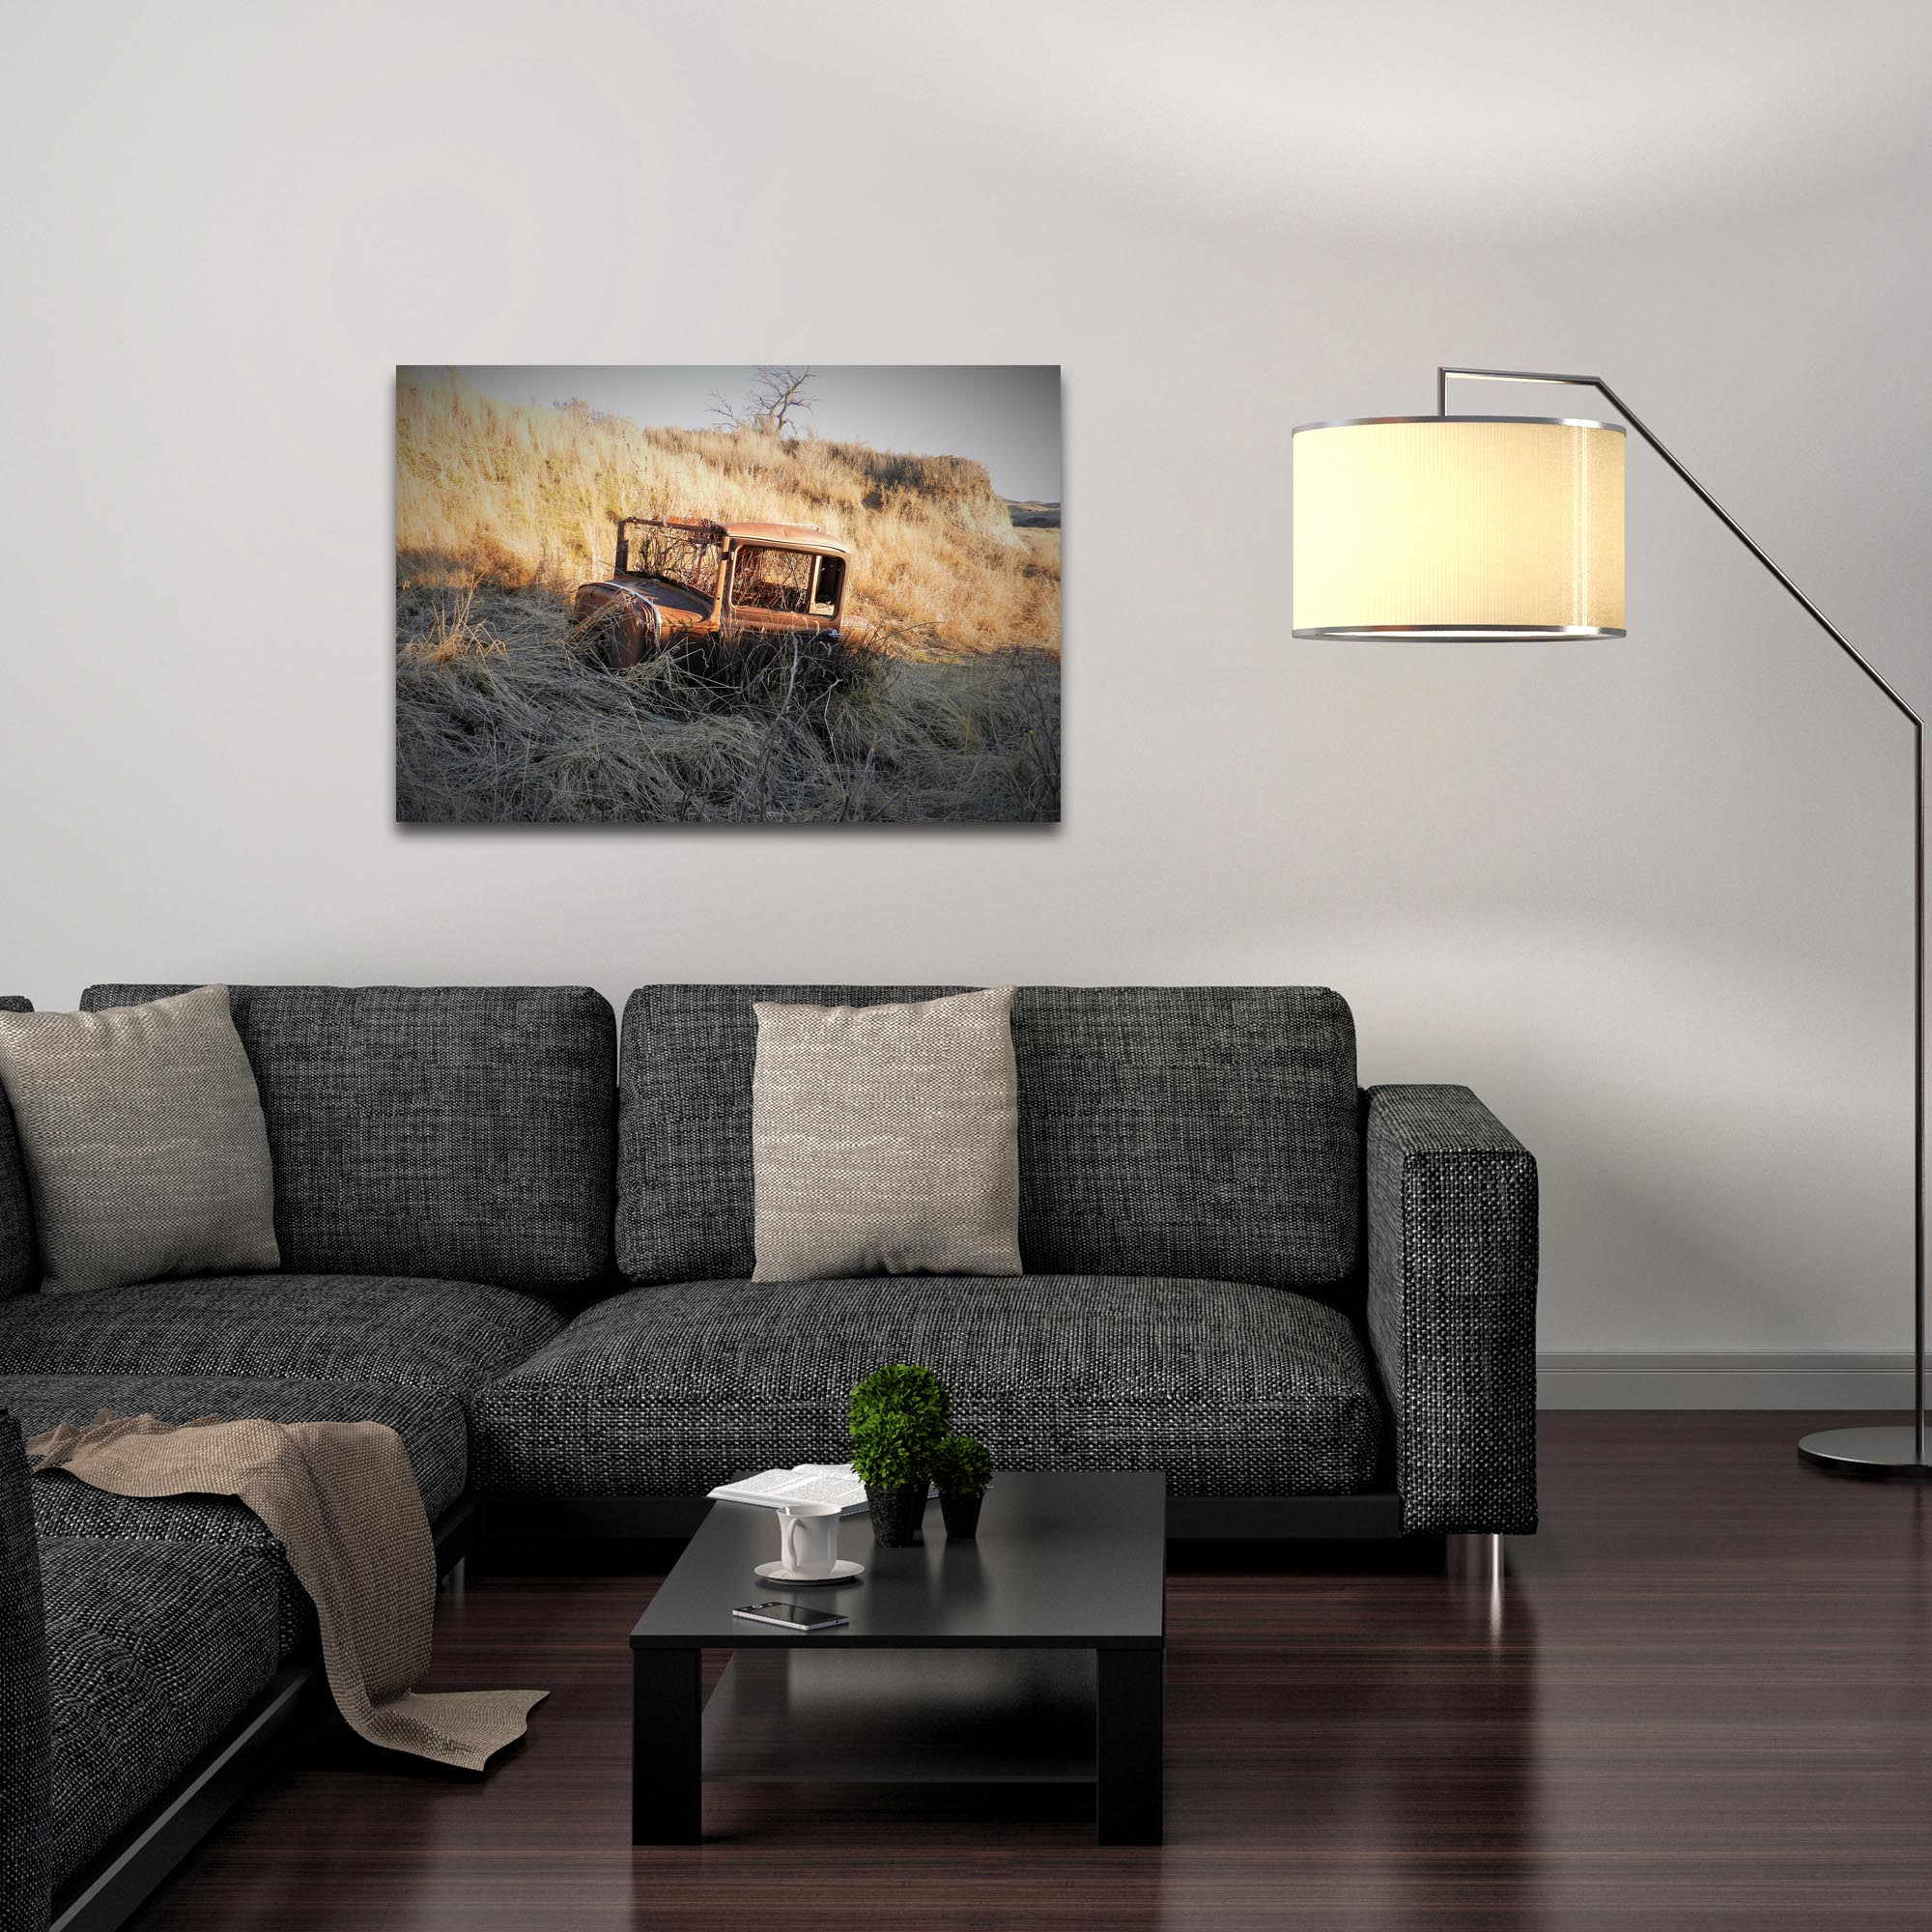 Western Wall Art 'The Passage' - American West Decor on Metal or Plexiglass - Lifestyle View